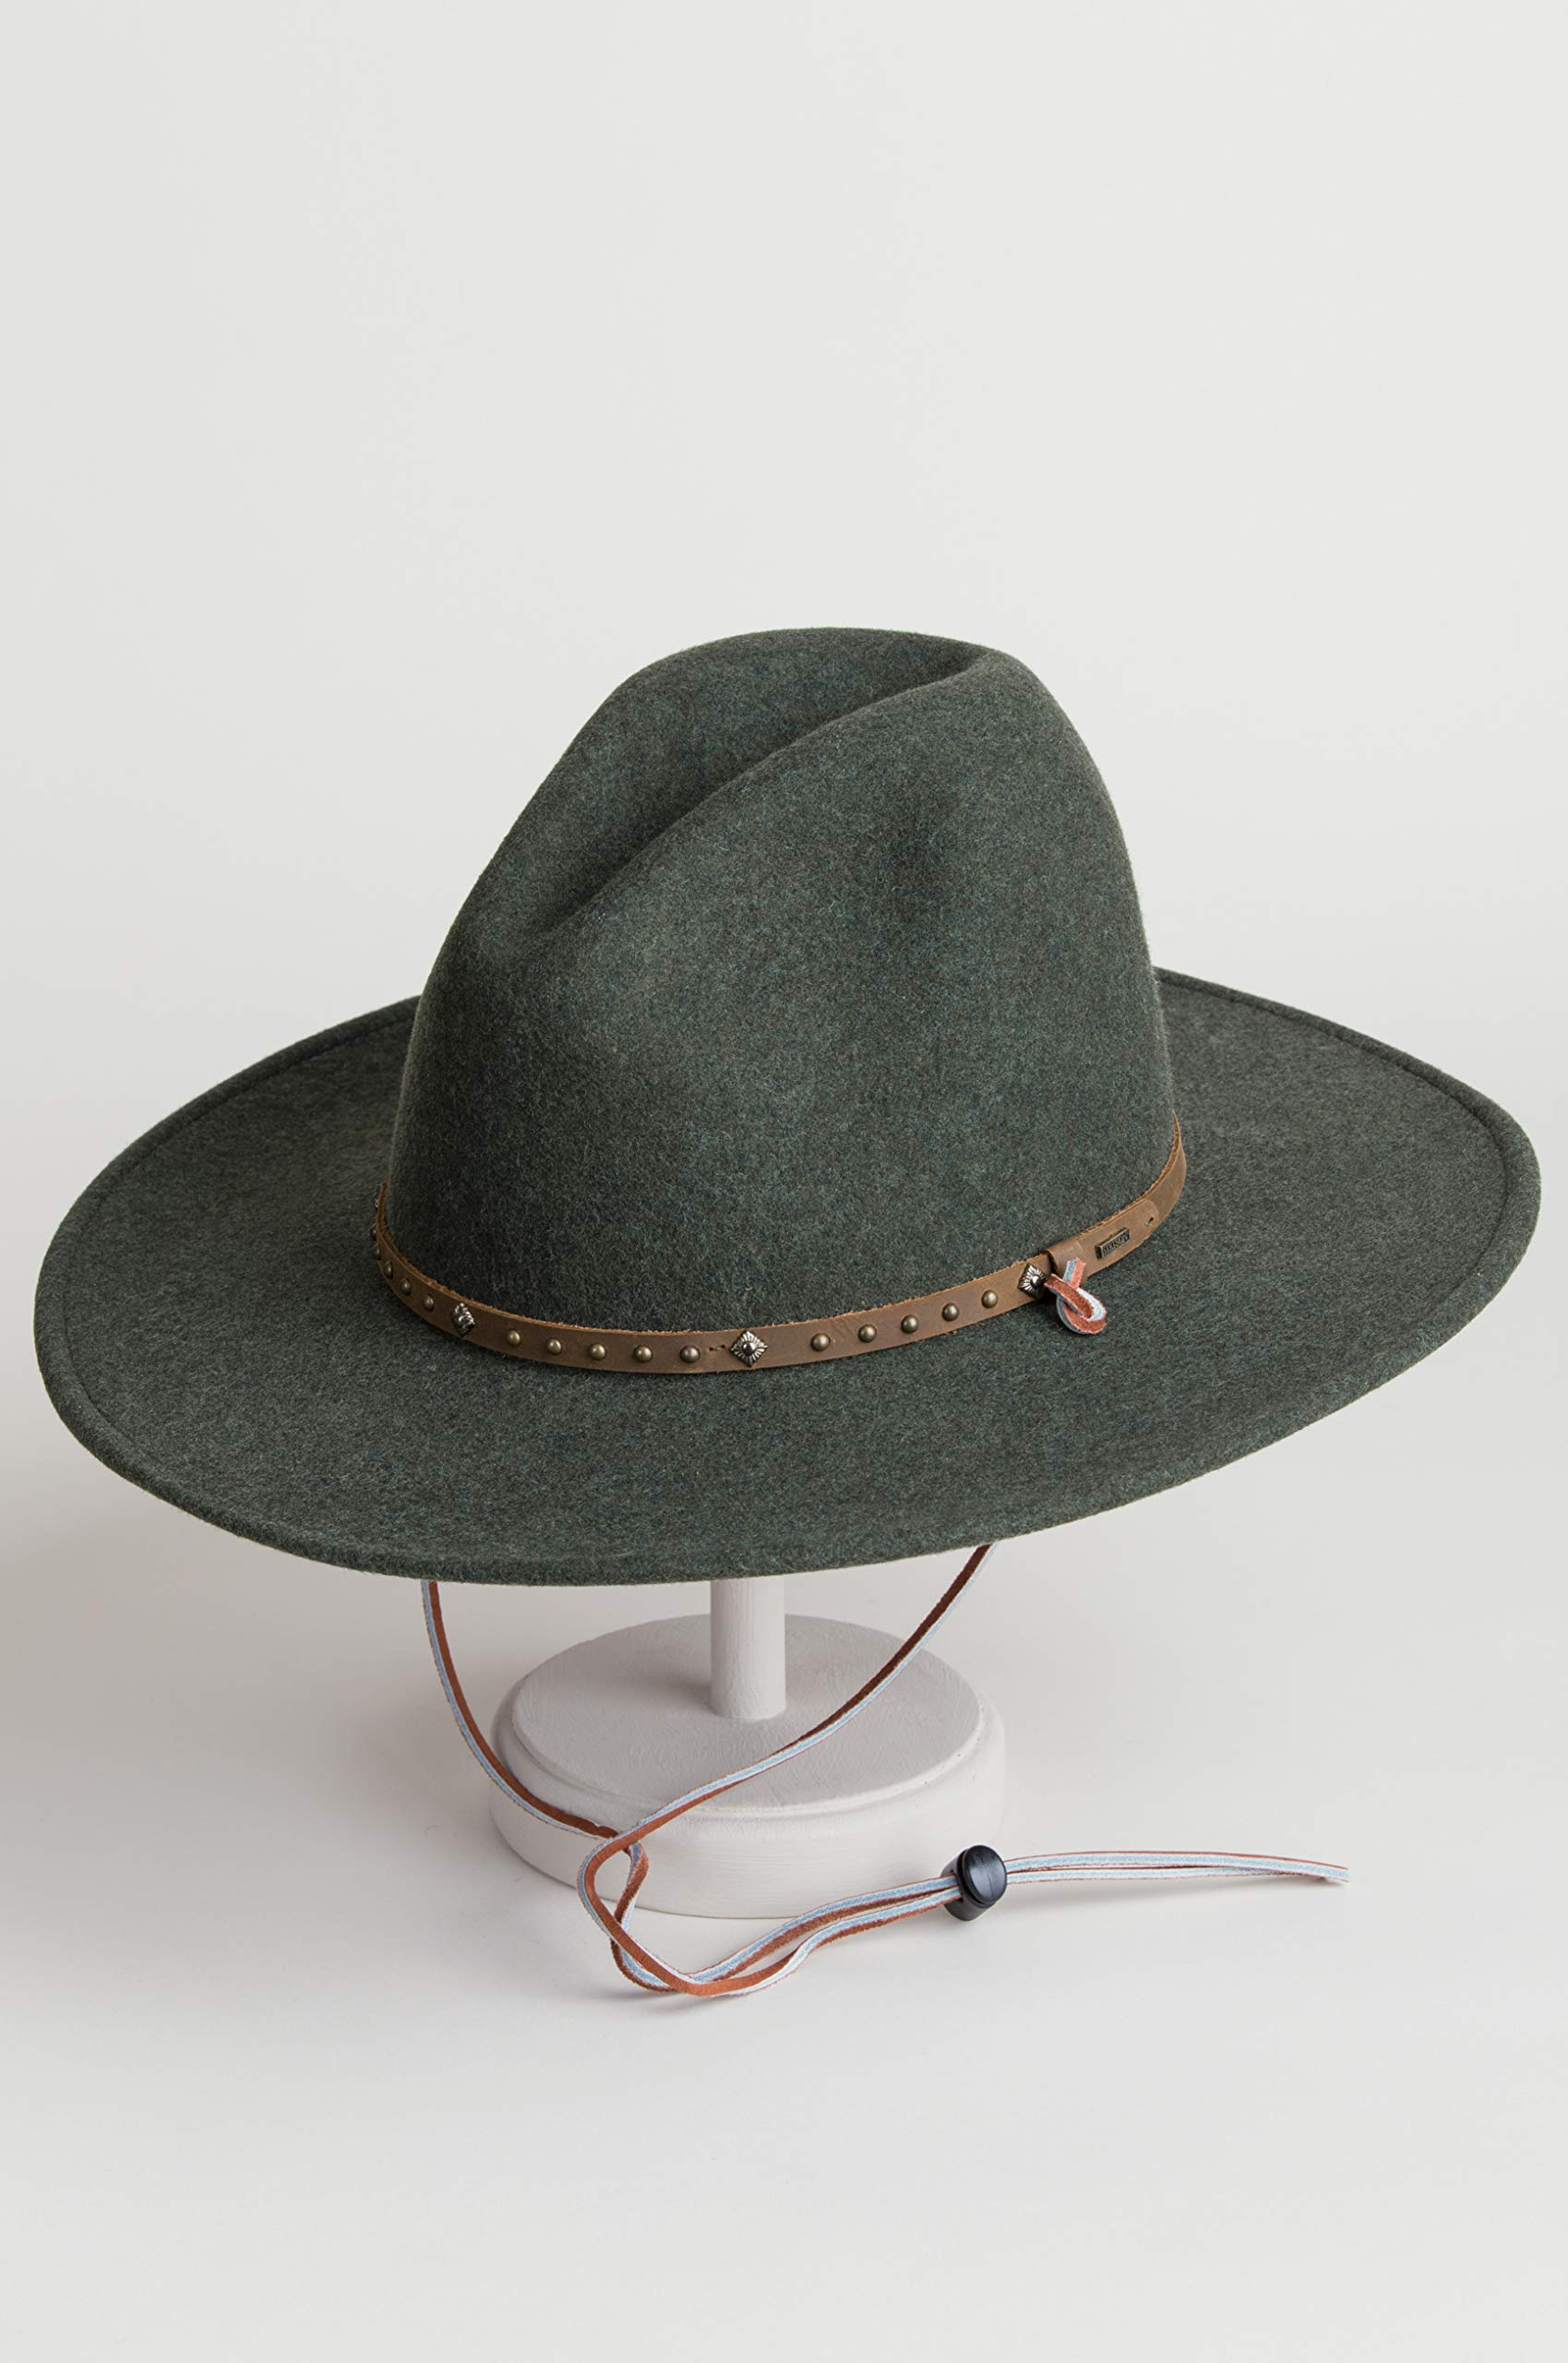 Men's Lonesome Trail Crushable Wool Stetson Hat, OLIVE MIX, Size SMALL by Stetson (Image #3)